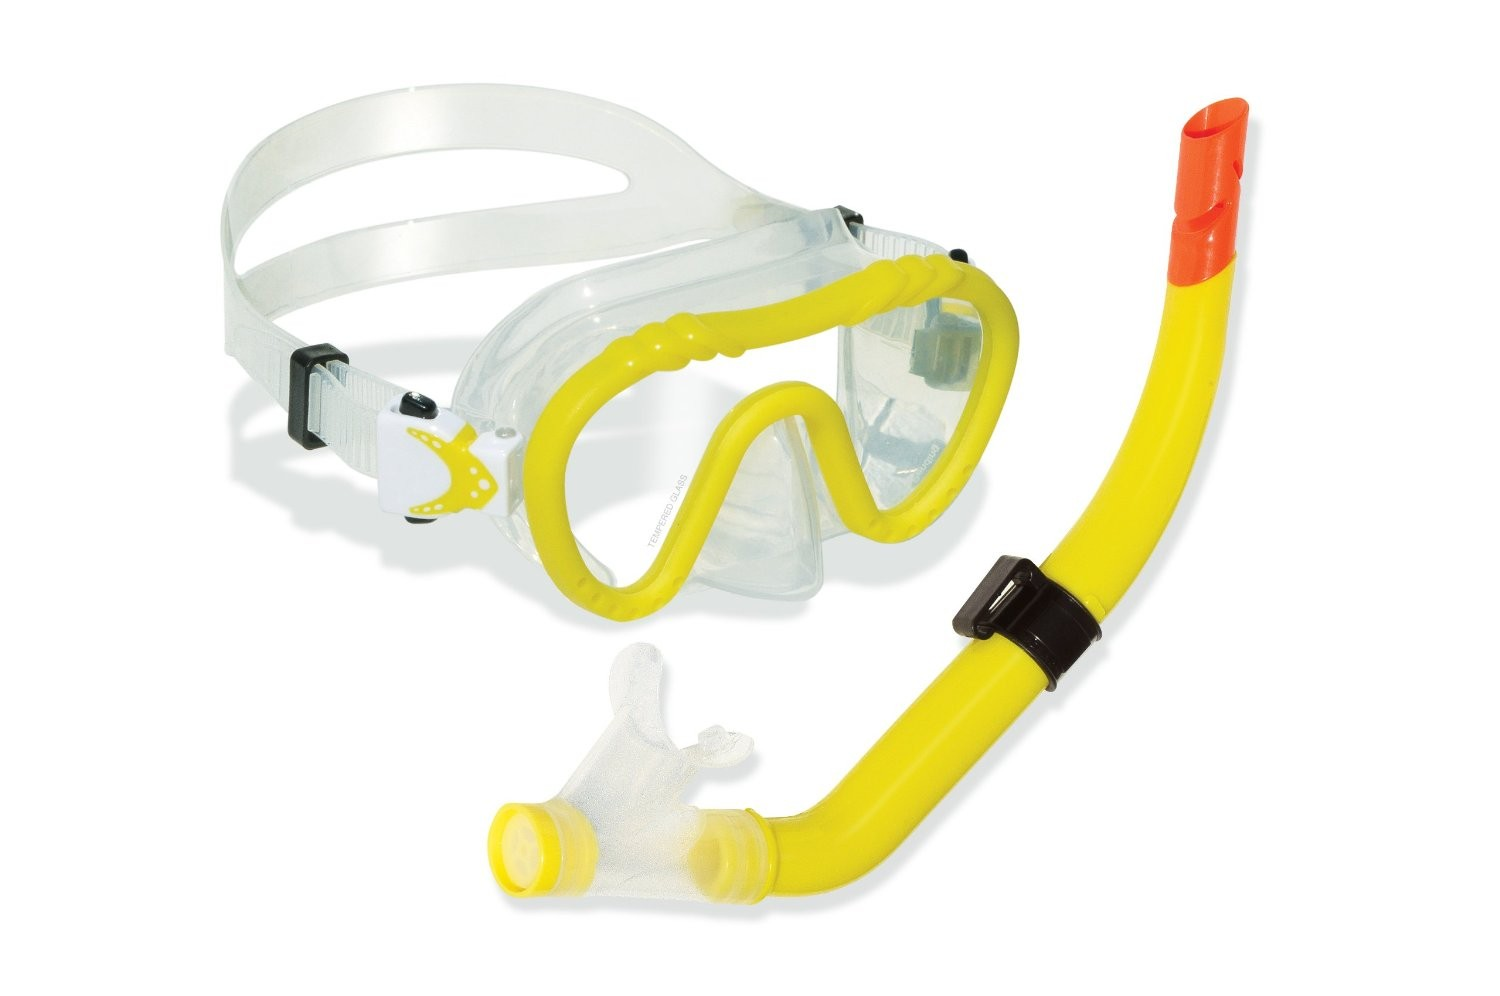 Swimline Divesite Silicone Mask and Snorkel Set (Kids Size) - Yellow